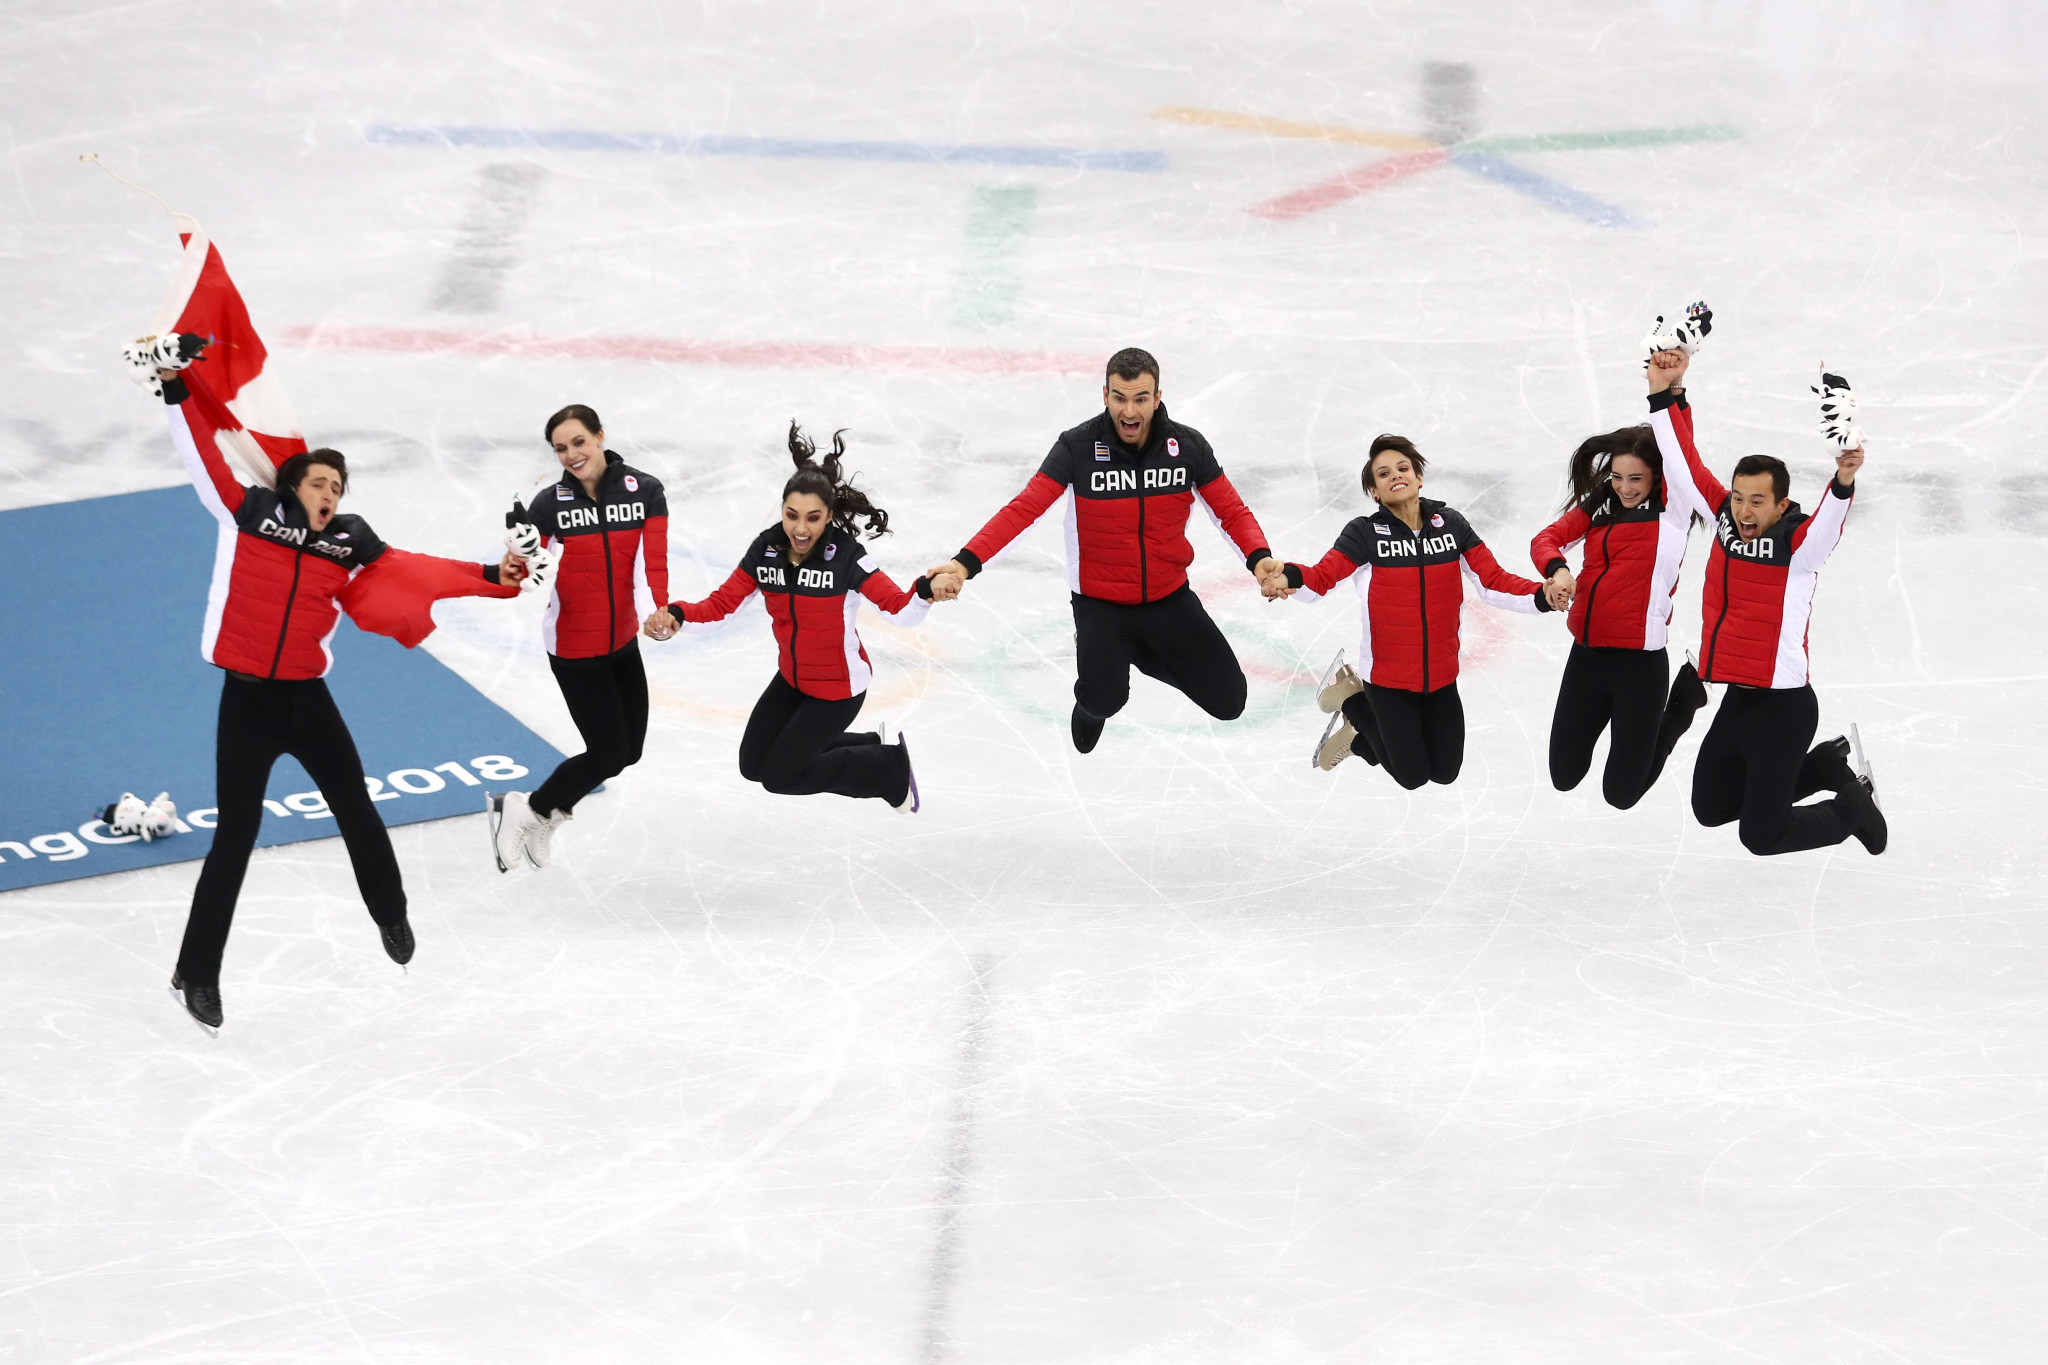 Daleman delivers as Canada wrap up team figure skating gold medal at Pyeongchang 2018